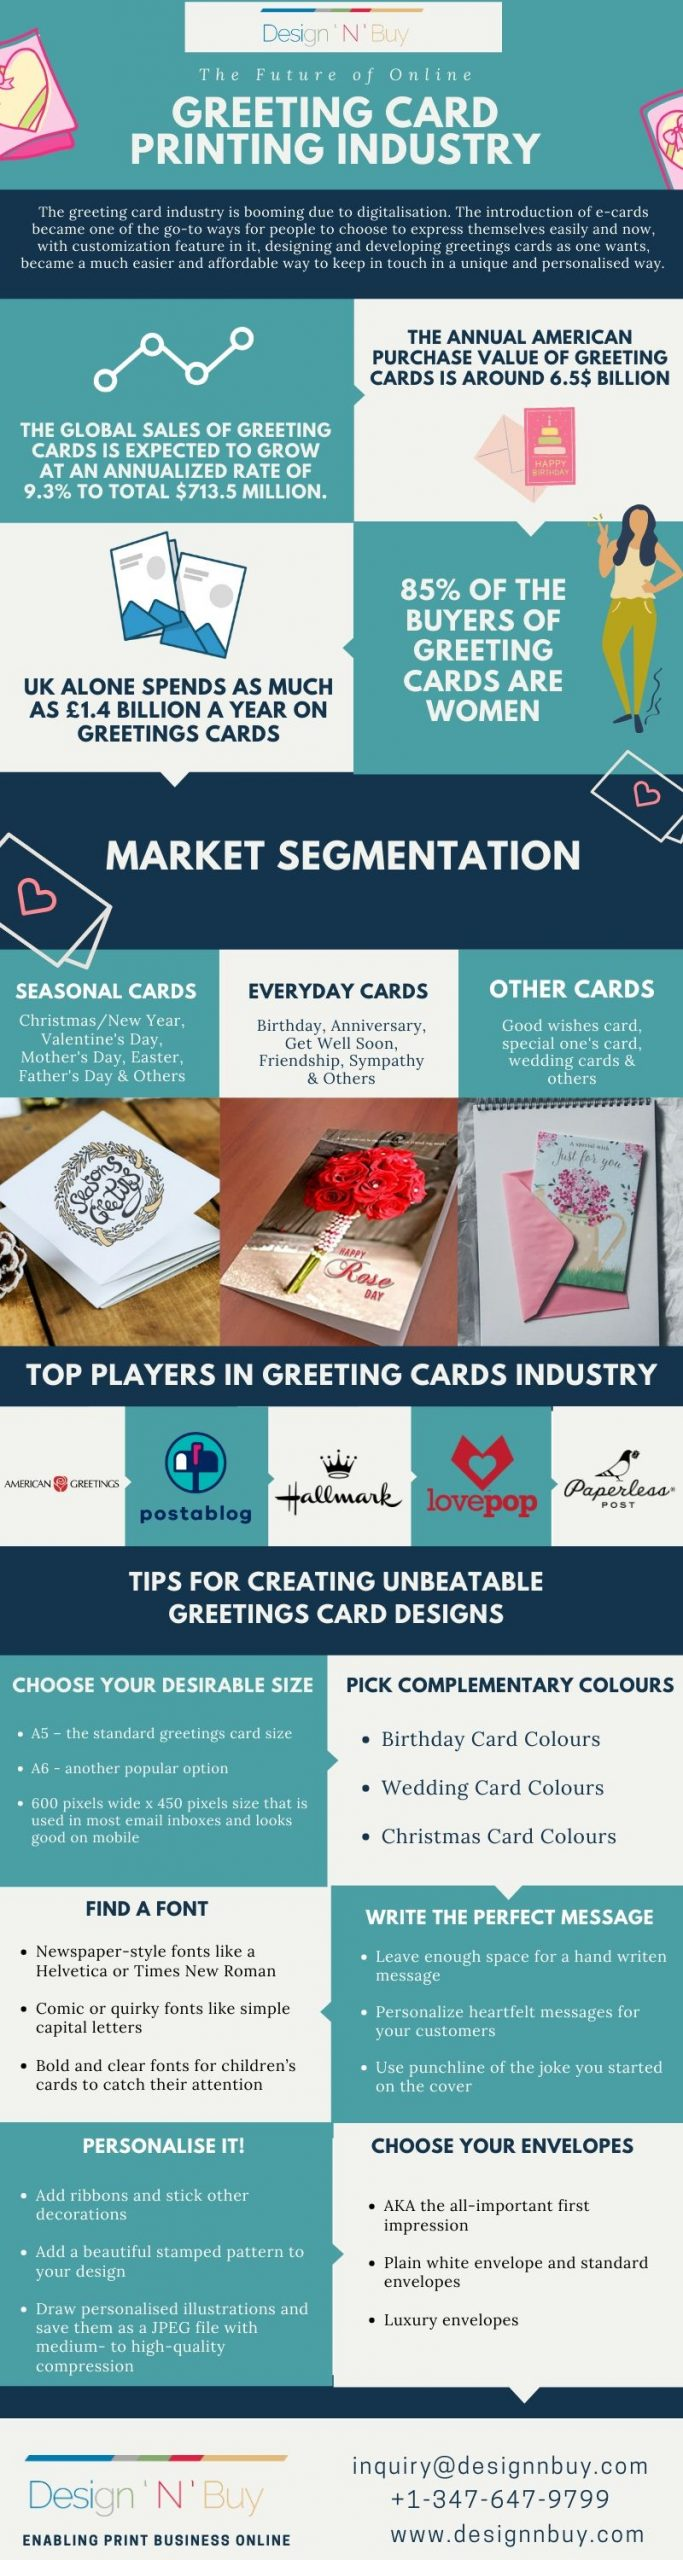 The Future Of Online Greeting Card Printing Industry